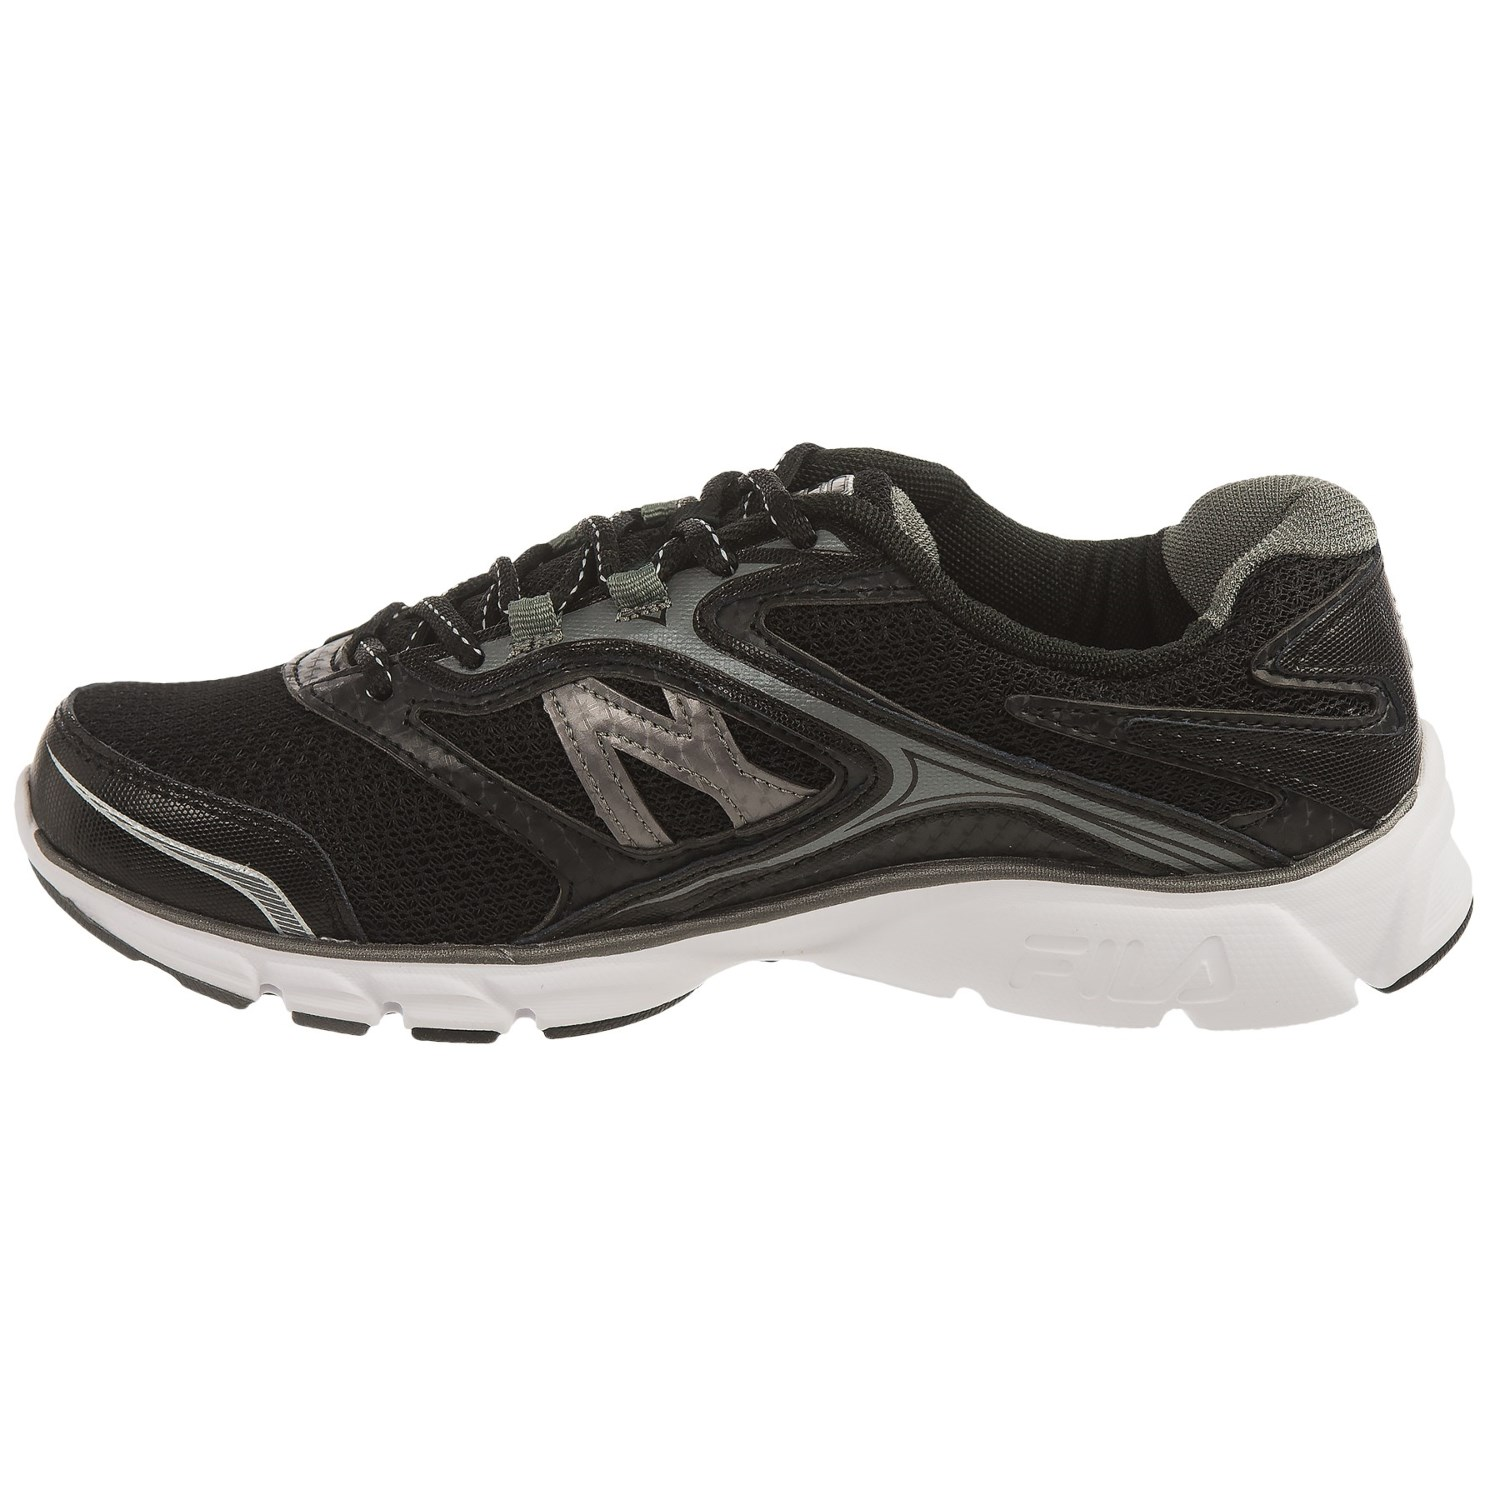 Fila Black Running Shoes Woment